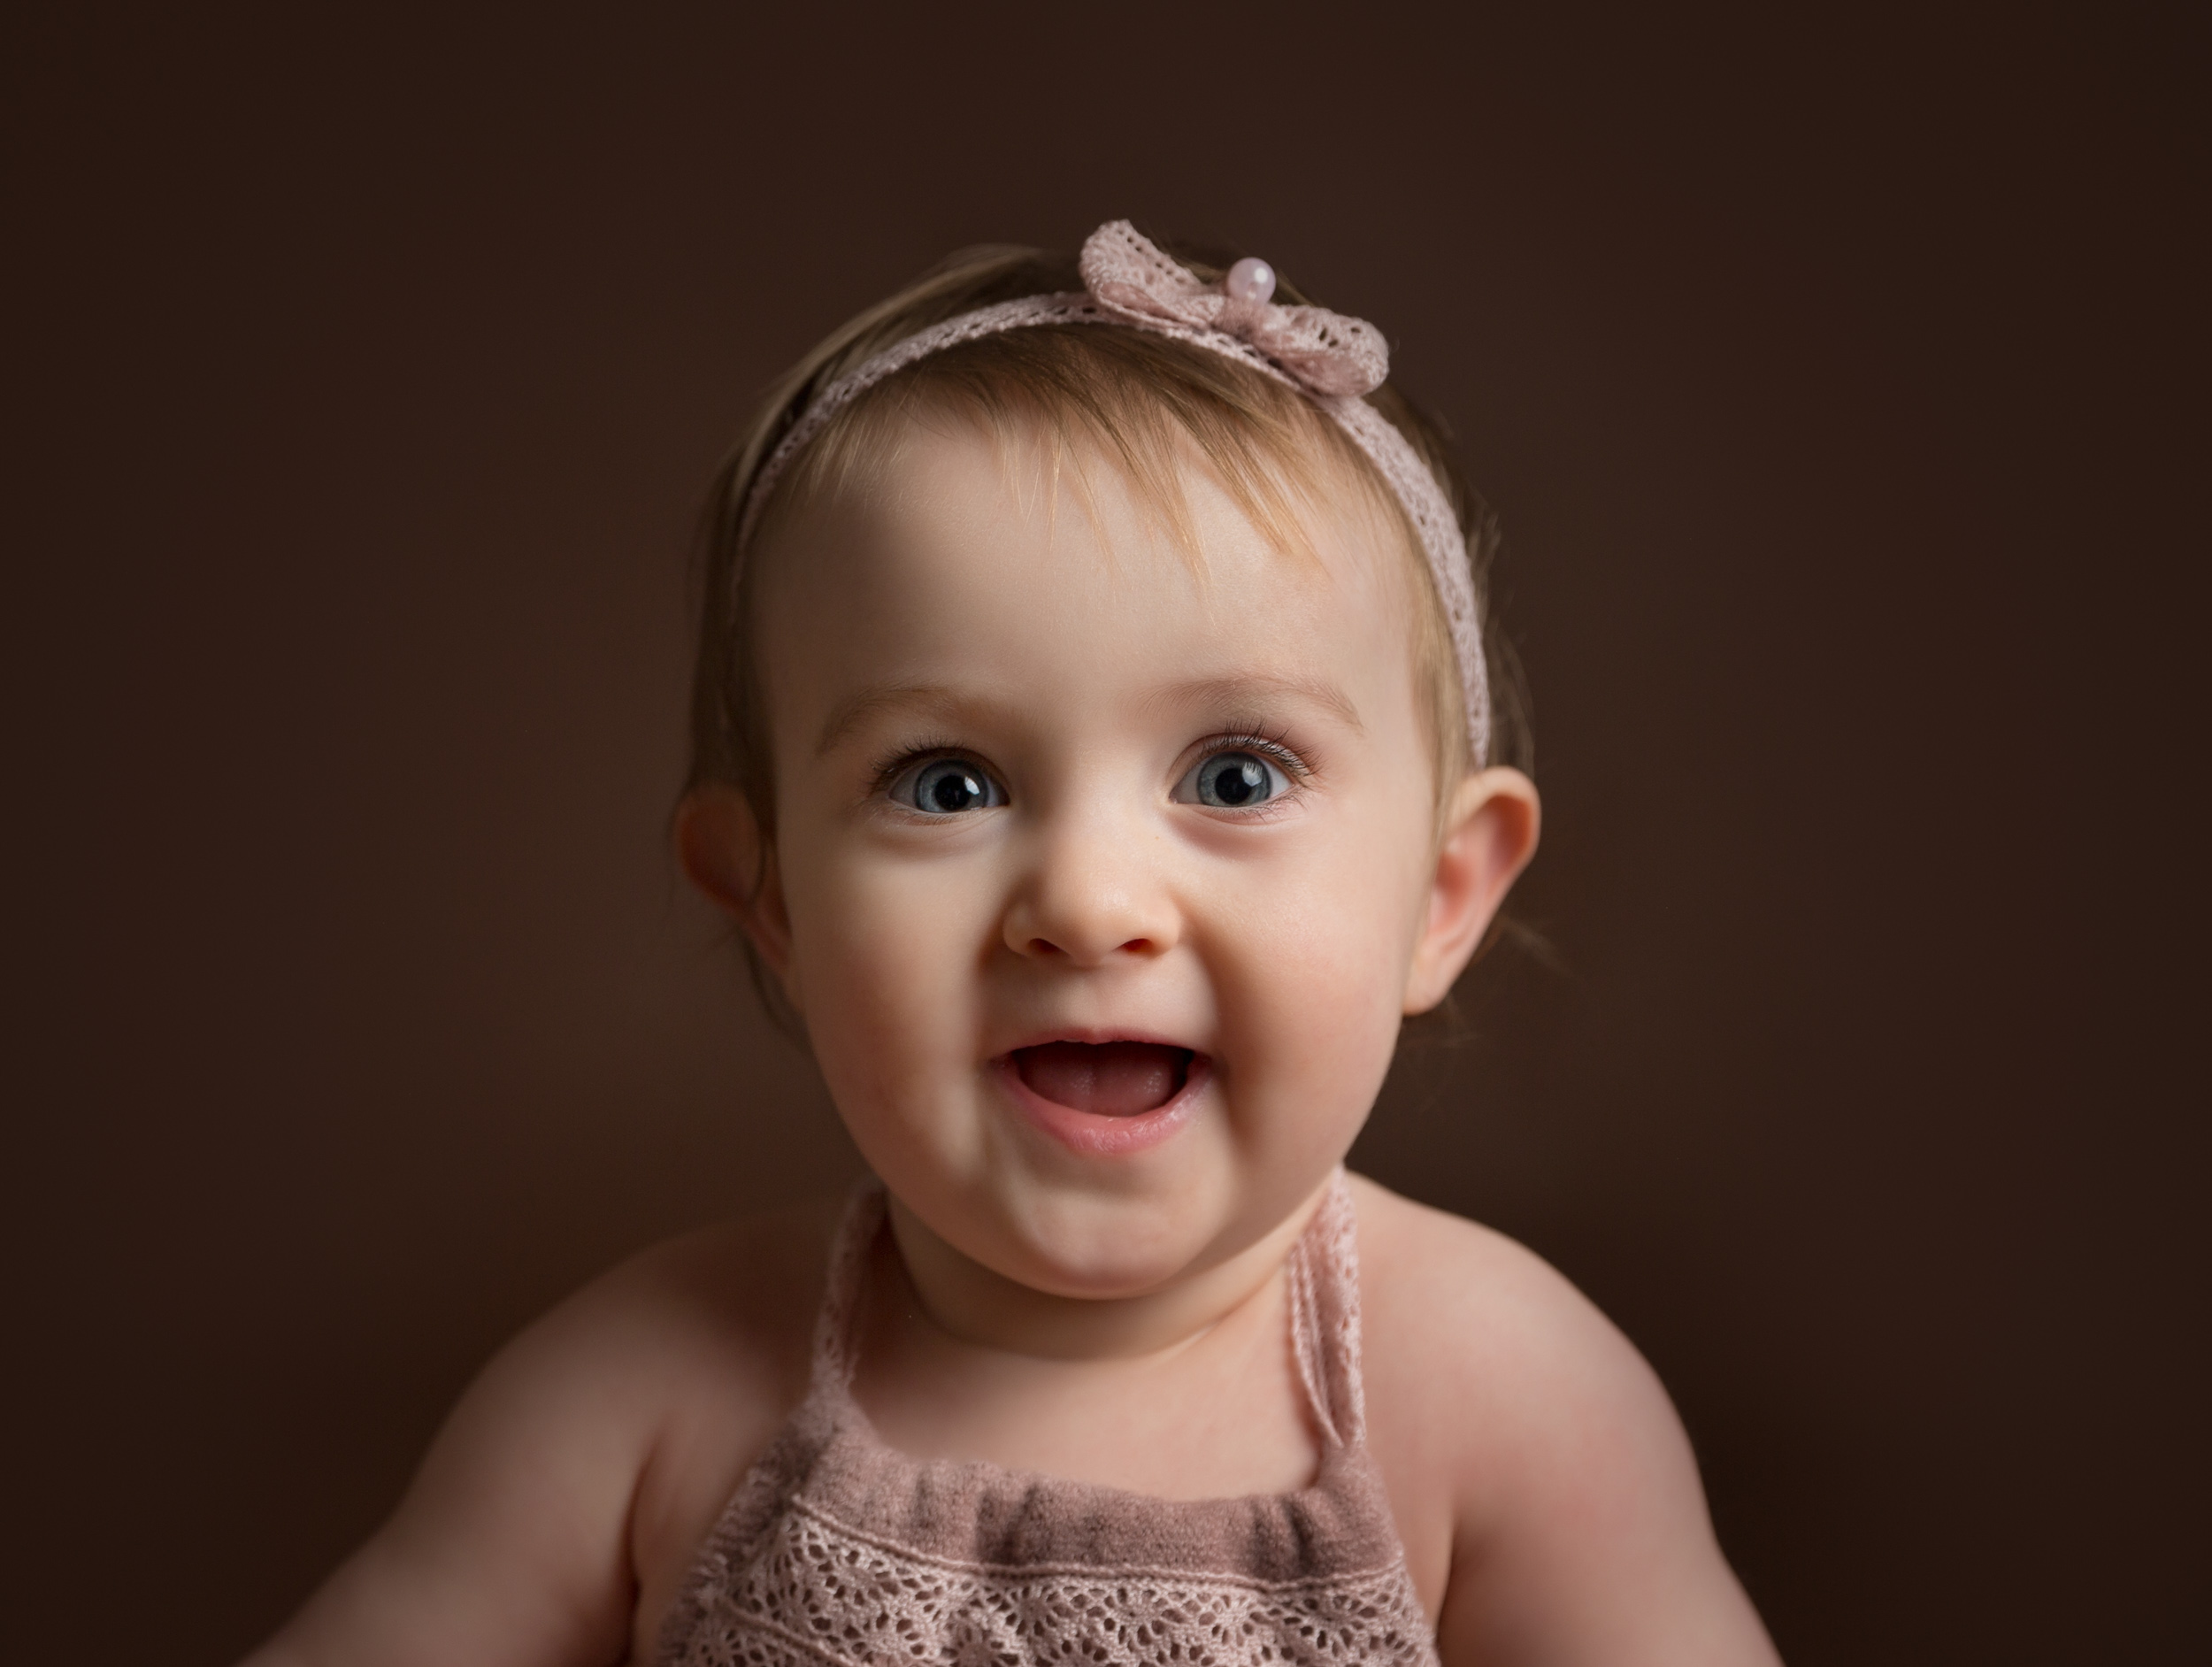 Close up of a little girl on her birthday photo shoot in Cheshire